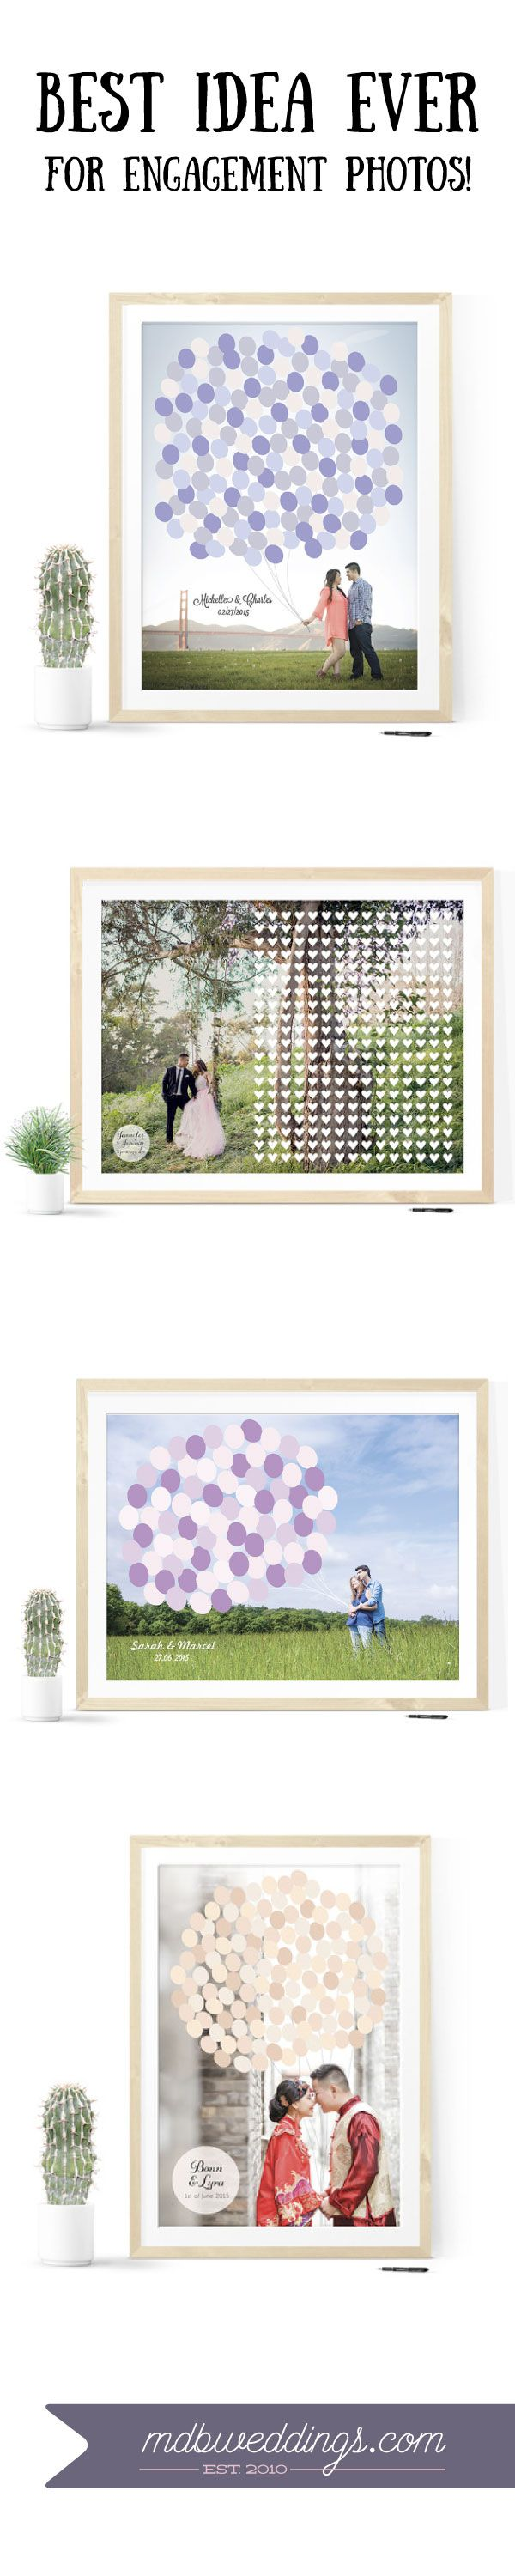 OBSESSED with this. Turn your engagement photos into a beautiful print for guests to sign at your wedding.